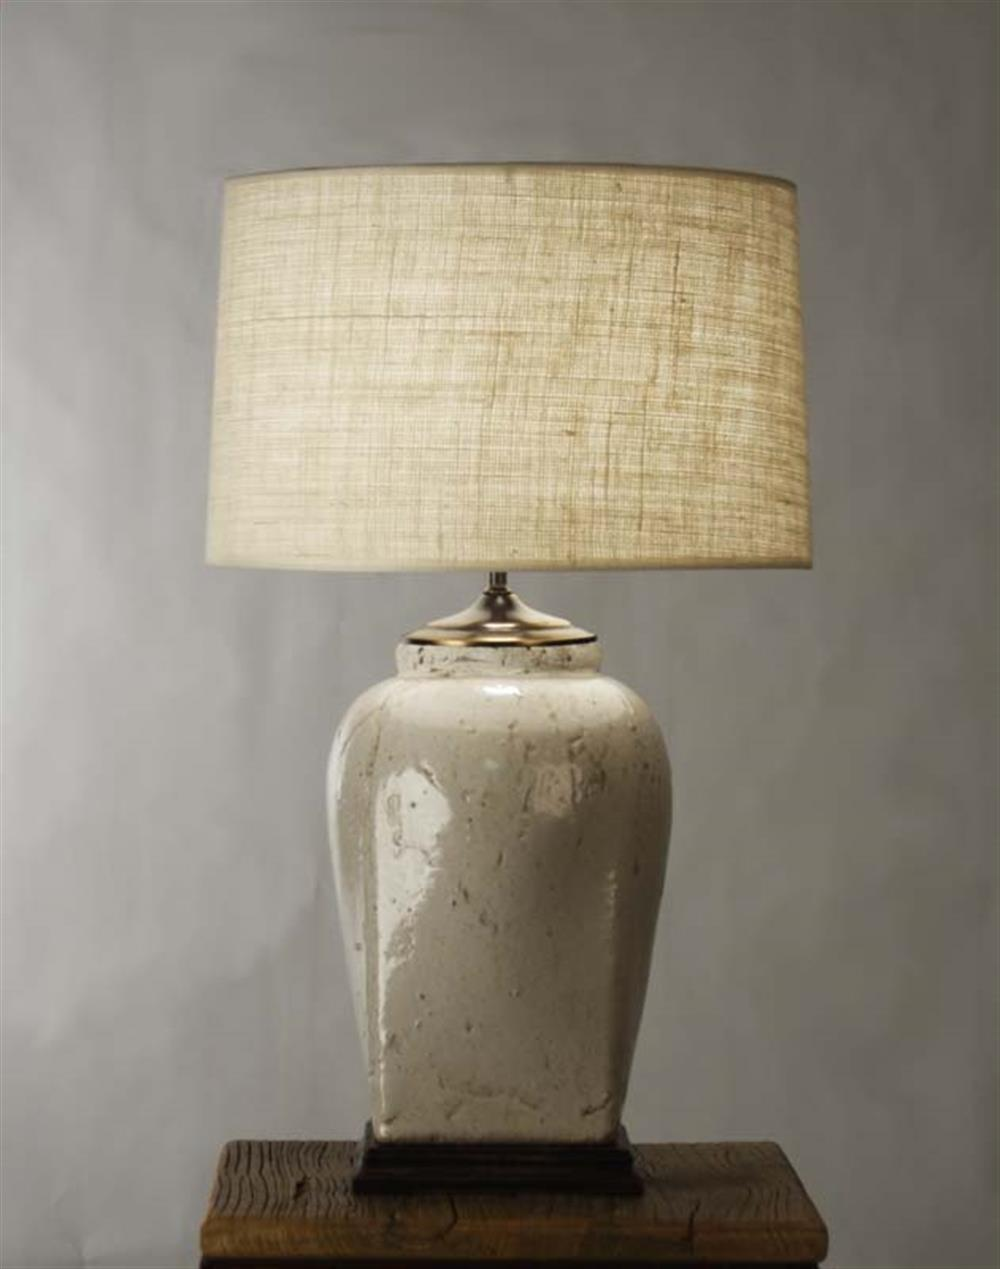 lighting table lamps french country ceramic linen shade table lamp. Black Bedroom Furniture Sets. Home Design Ideas